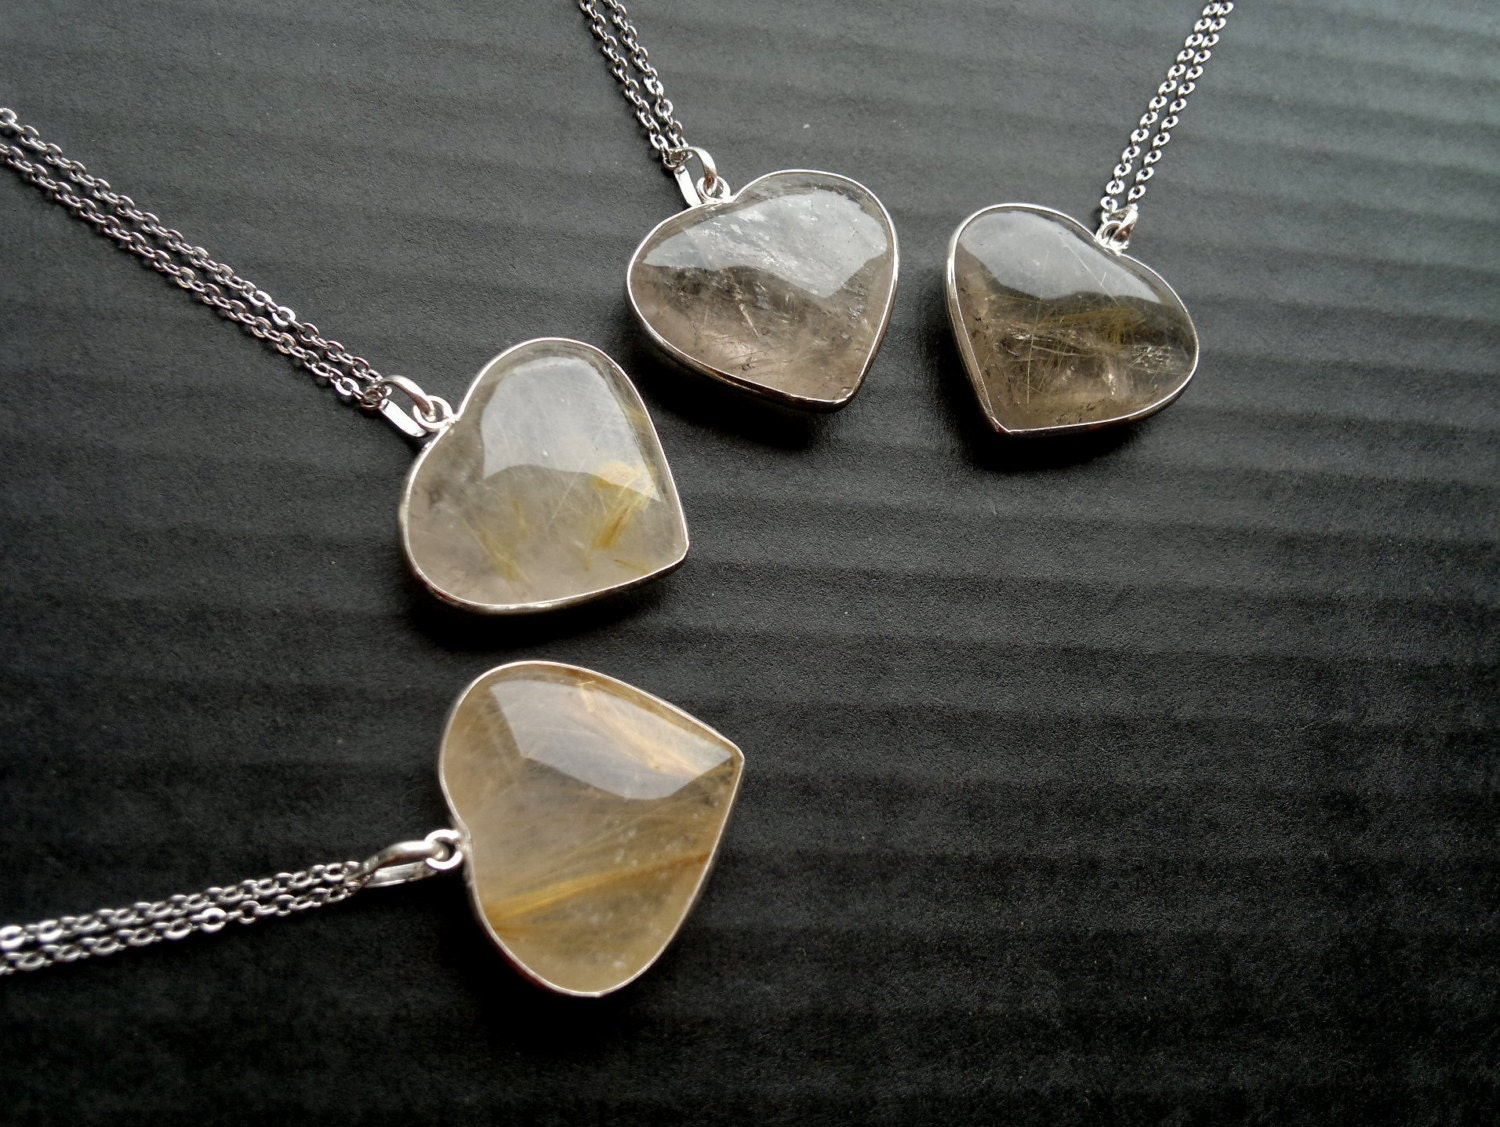 Golden Rutilated Quartz Jewelry Of Golden Rutilated Quartz Necklace Gold Rutile Heart Necklace